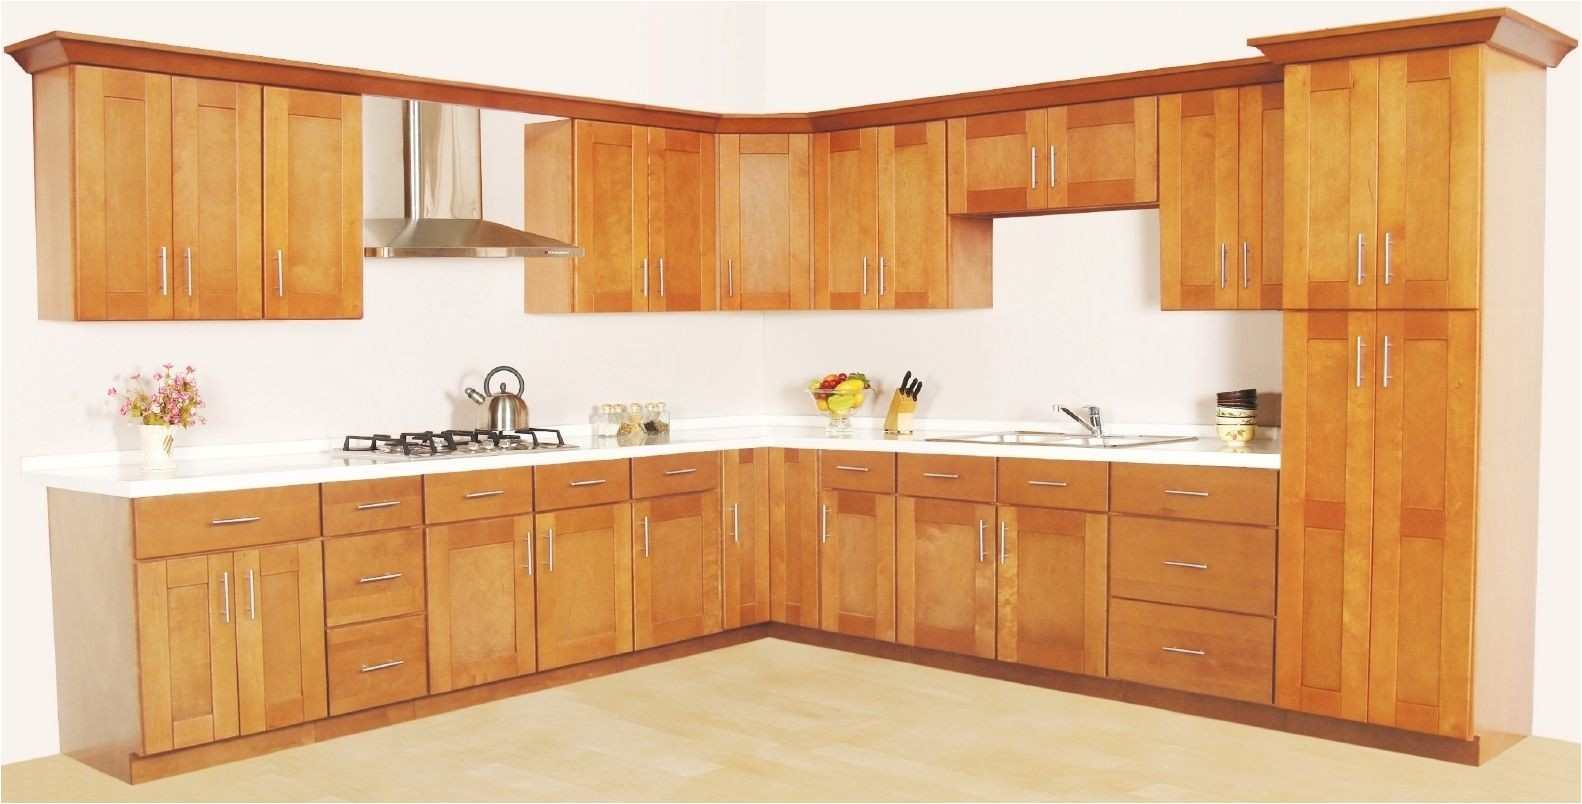 best luxury 10x10 kitchen cabinets under 1000 collections home design intended for 10x10 remodel 18